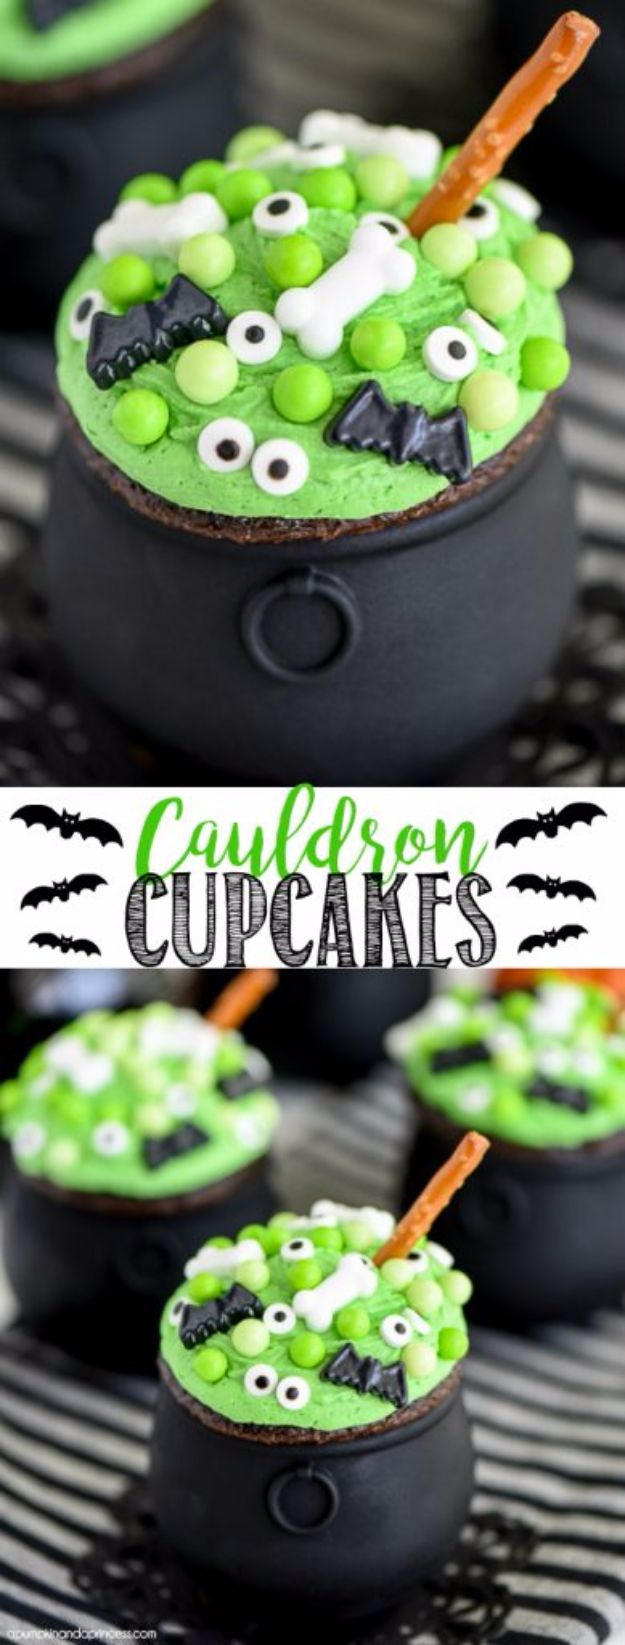 Cute Halloween Party Recipes - Cauldron Cupcakes - Healthy Ideas for Kids for School, Teens and Adults - Easy and Quick Recipes and Idea for Dips, Chips, Spooky Cookies and Treats - Appetizers and Finger Foods Made With Vegetables, No Candy, Cheap Food, Scary DIY Party Foods With Step by Step Tutorials #halloween #halloweenrecipes #halloweenparty